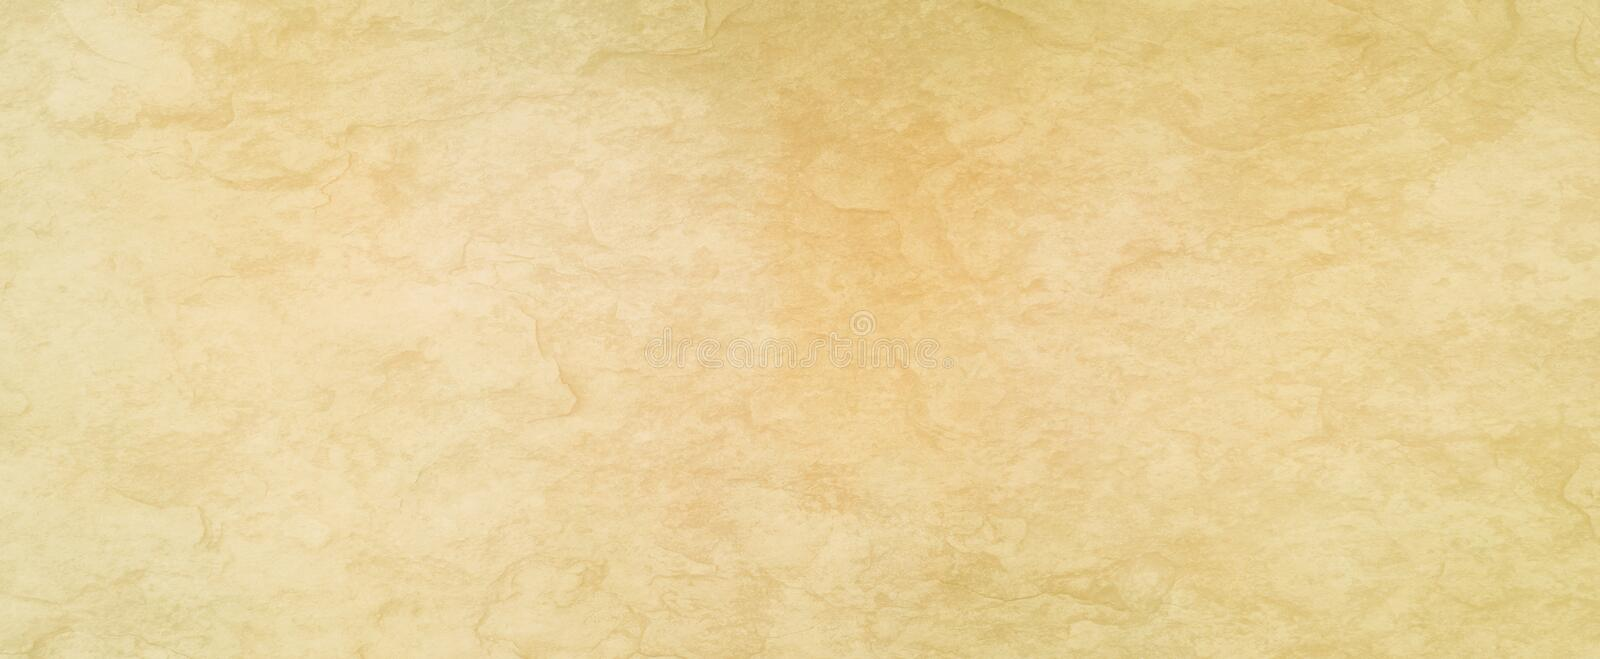 Old white background with yellow beige wrinkled distressed grunge texture, abstract vintage background or paper stock image